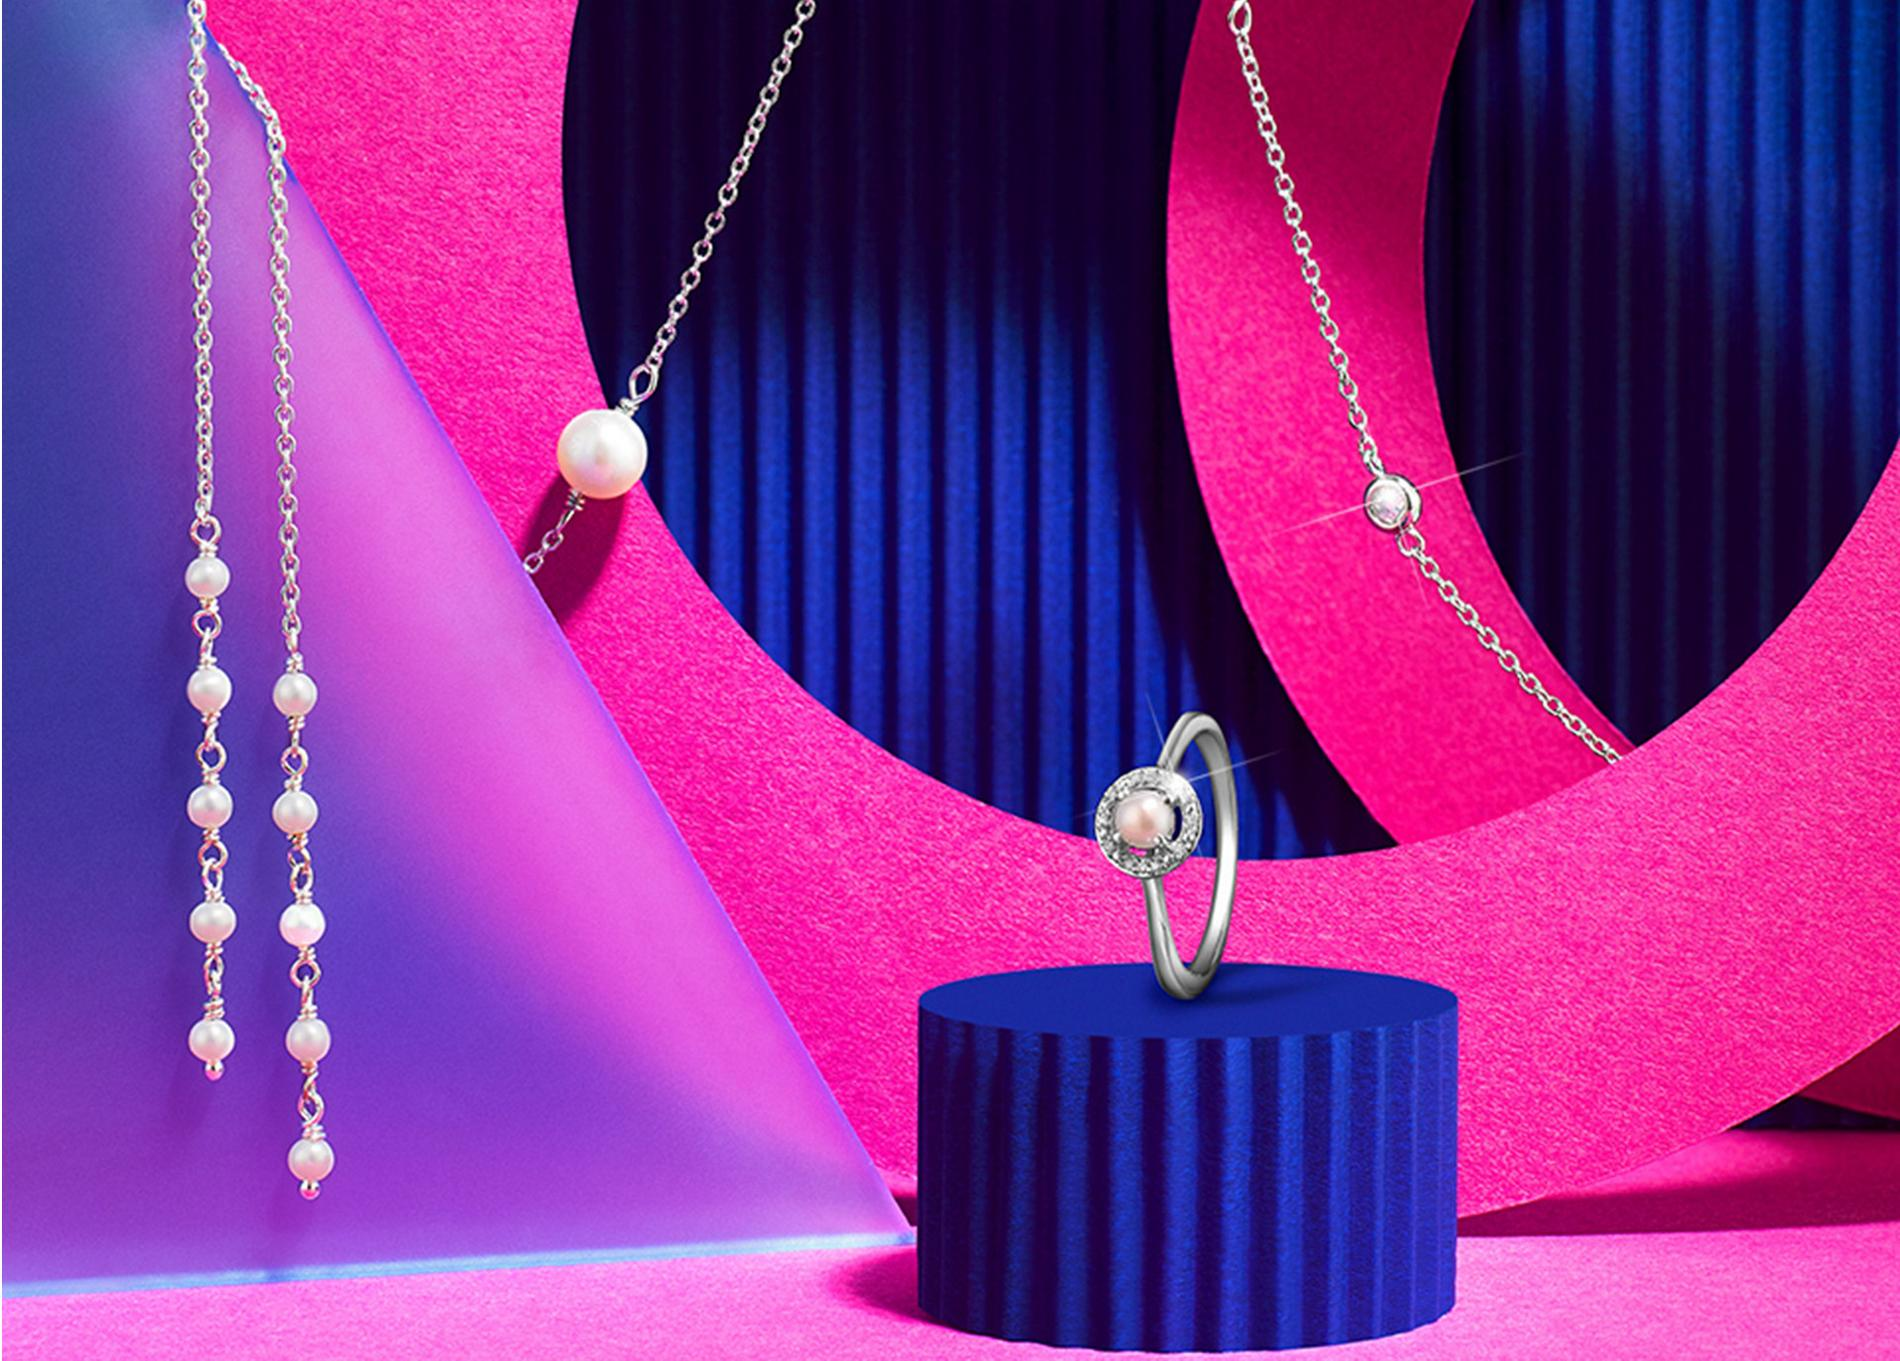 pearl jewellery against a pink and blue background